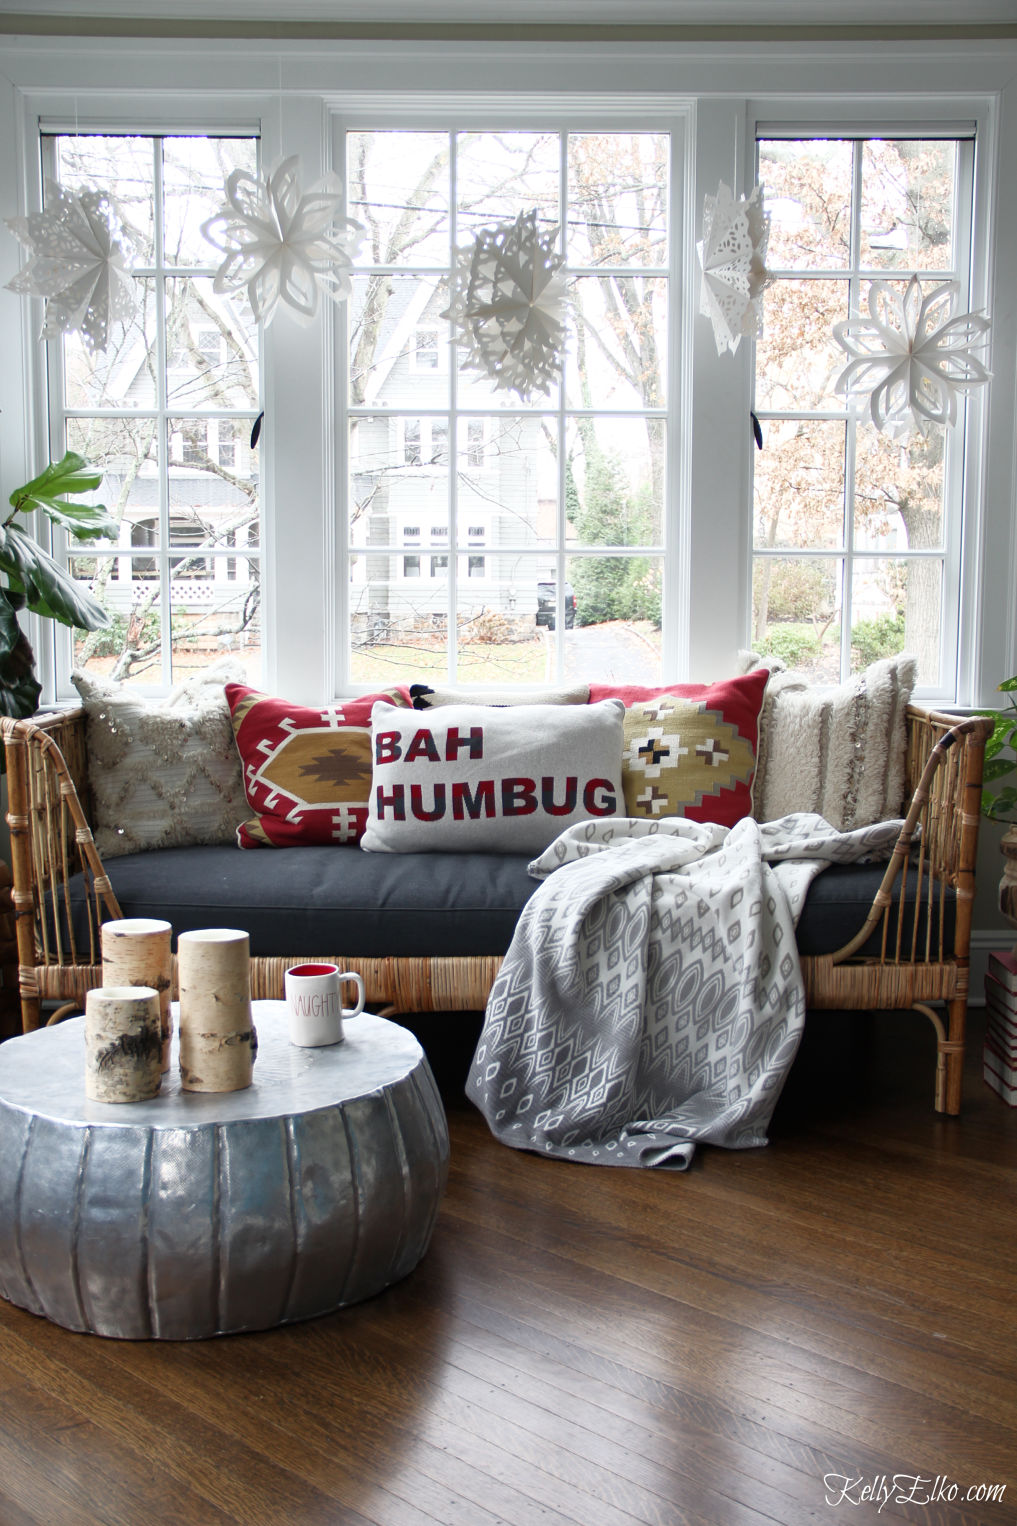 Love this Christmas sunroom with paper snowflakes hanging above a boho rattan daybed kellyelko.com #christmas #christmasdecor #christmasdecorating #christmaspillows #boho #bohodecor #eclecticdecor #interiordecor #interiordecorate #sunroom